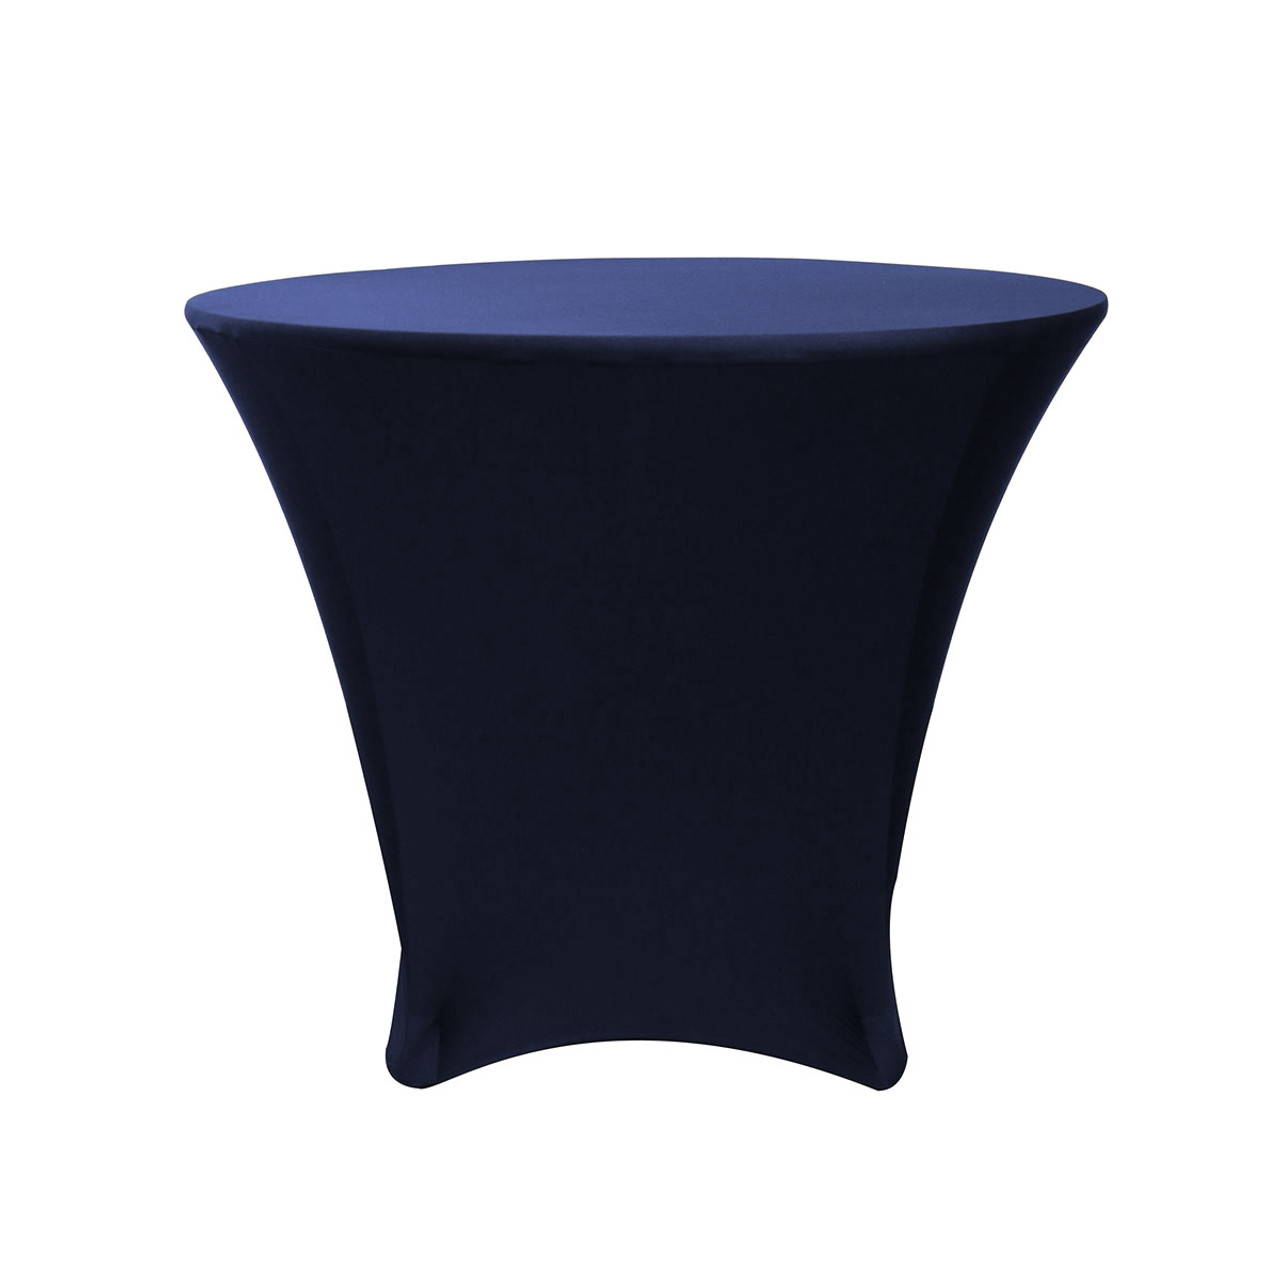 36 X 30 Inch Lowboy Cocktail Round Stretch Spandex Table Cover Navy